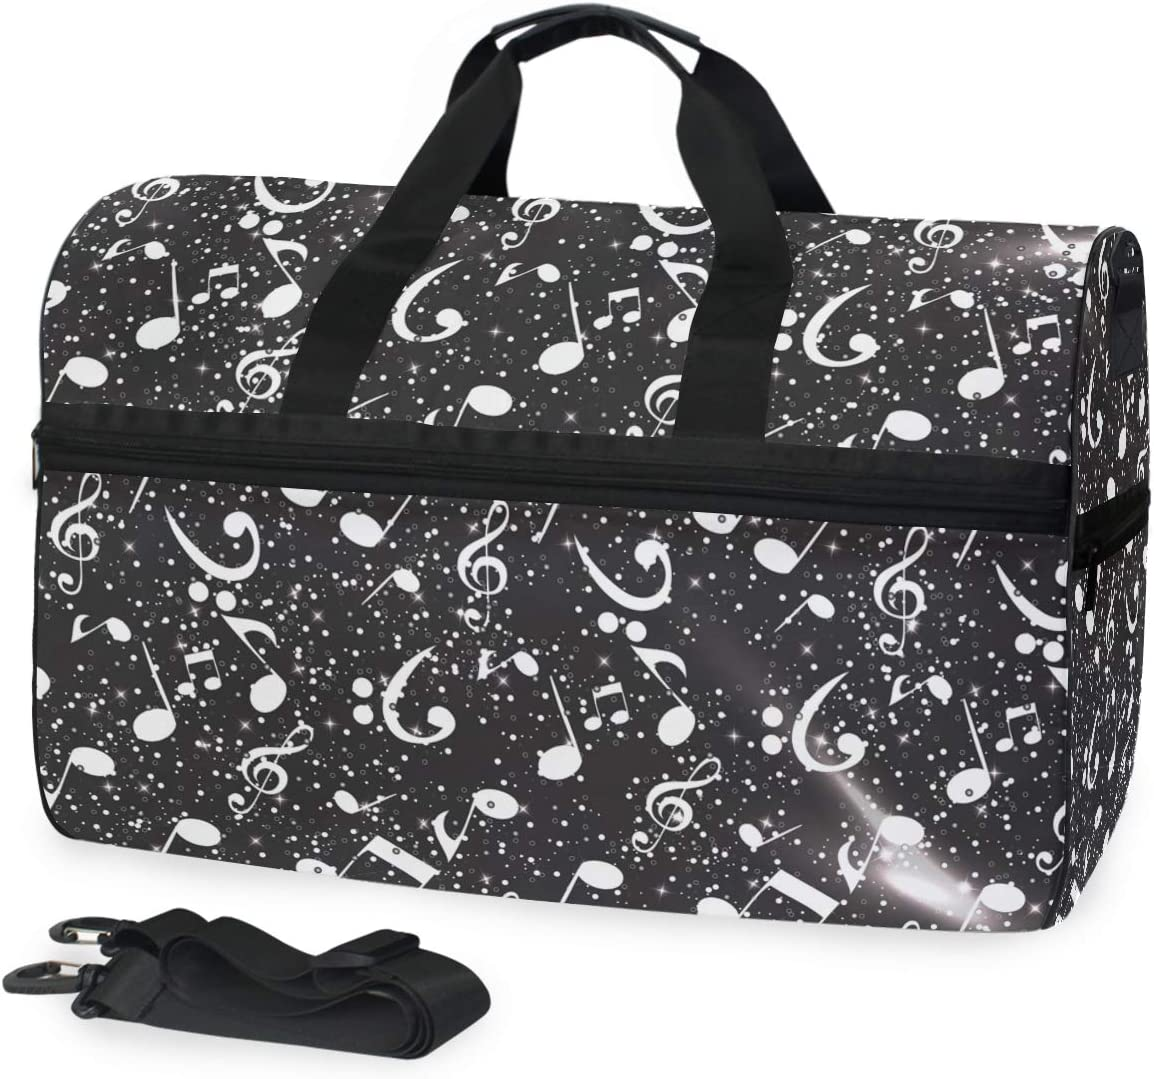 AHOMY White Black Musical Note Sports Gym Bag with Shoes Compartment Travel Duffel Bag